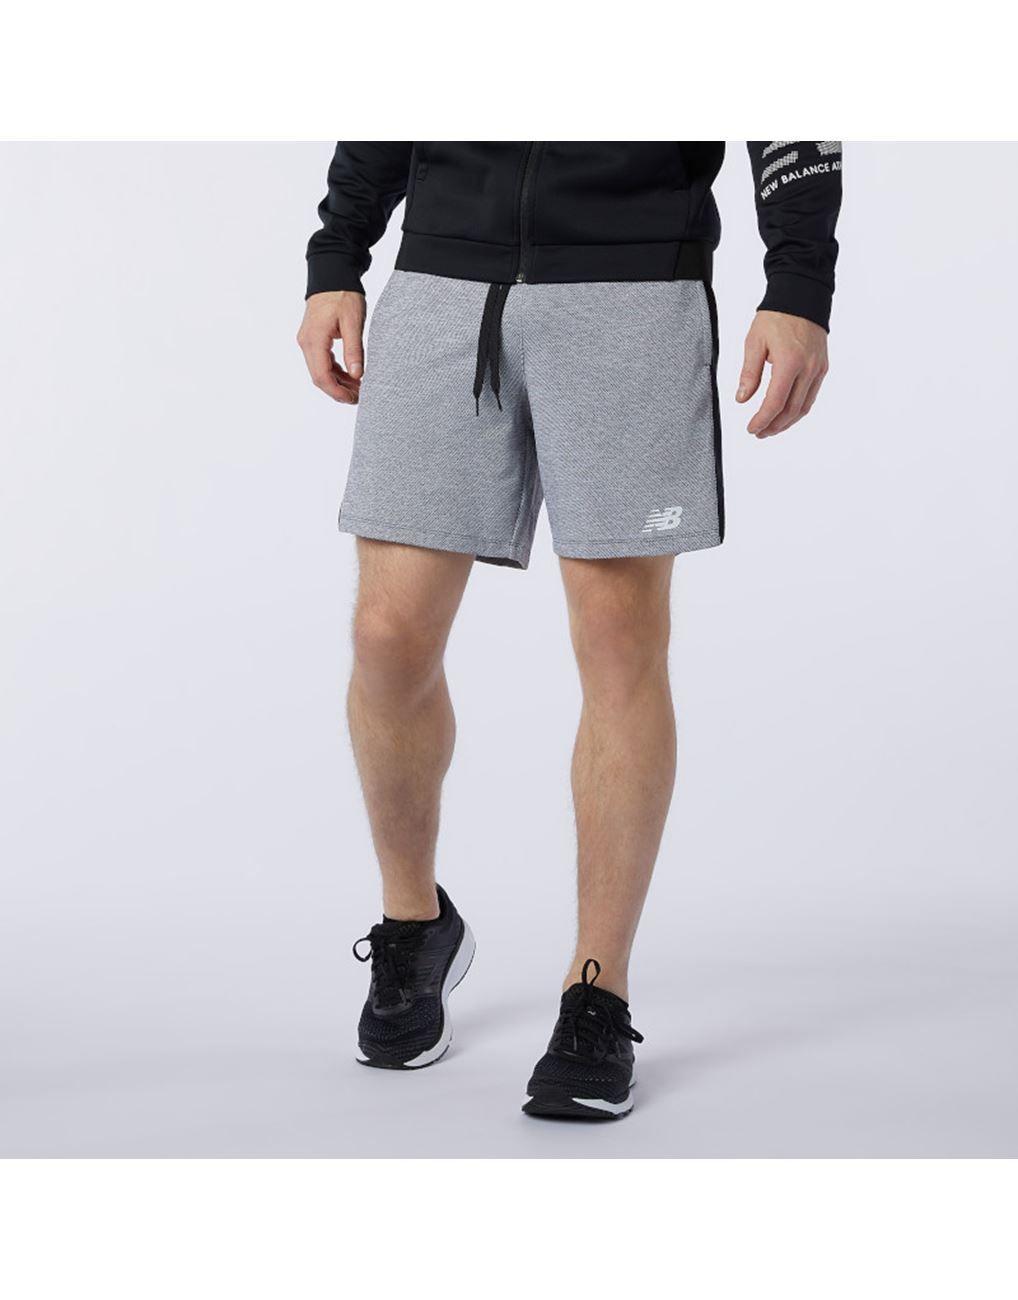 Tenacity Lightweight Knit Short